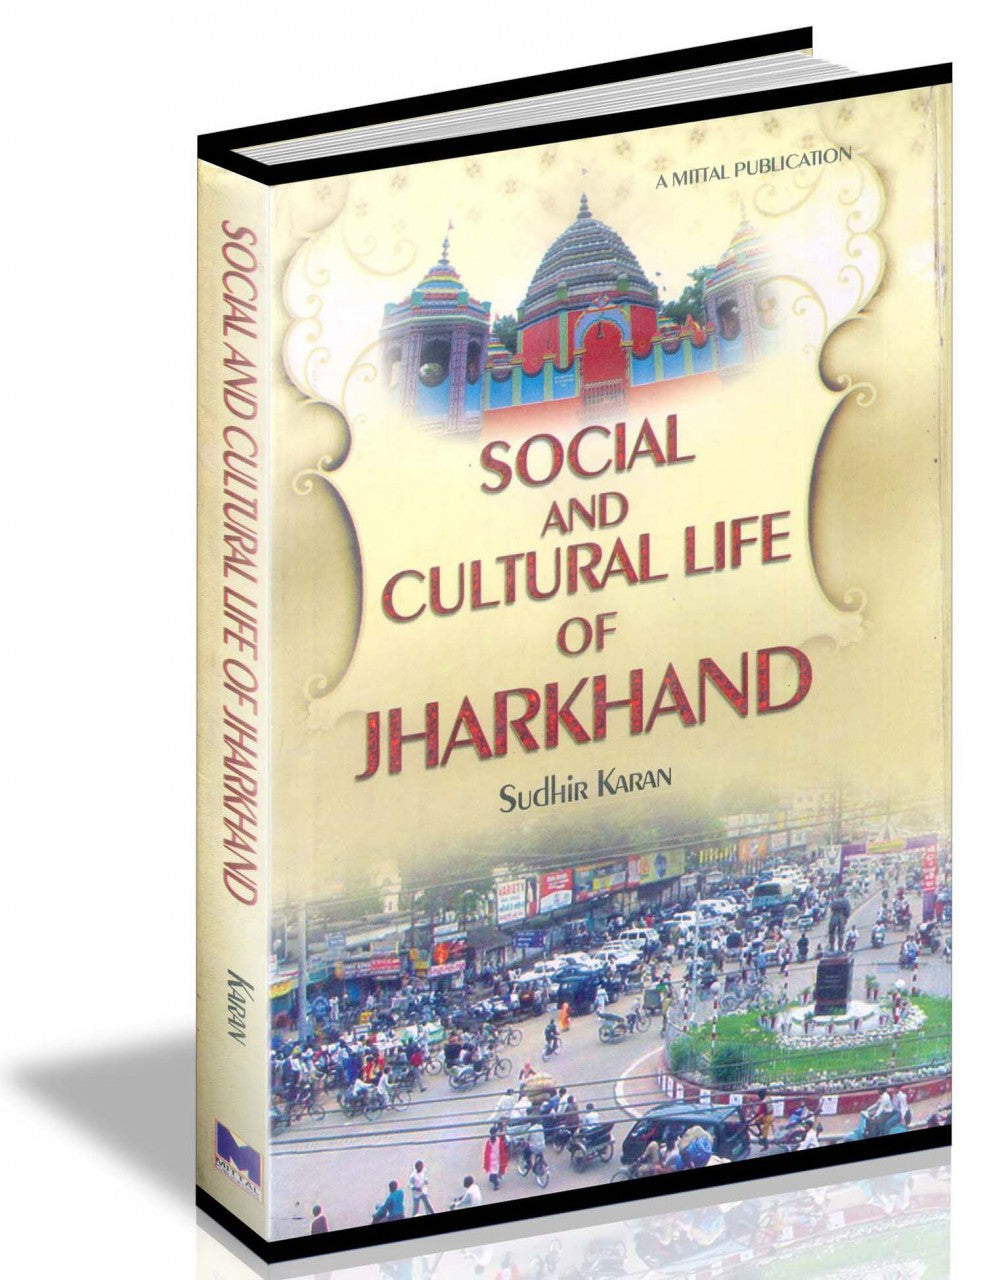 Social and Cultural Life of Jharkhand